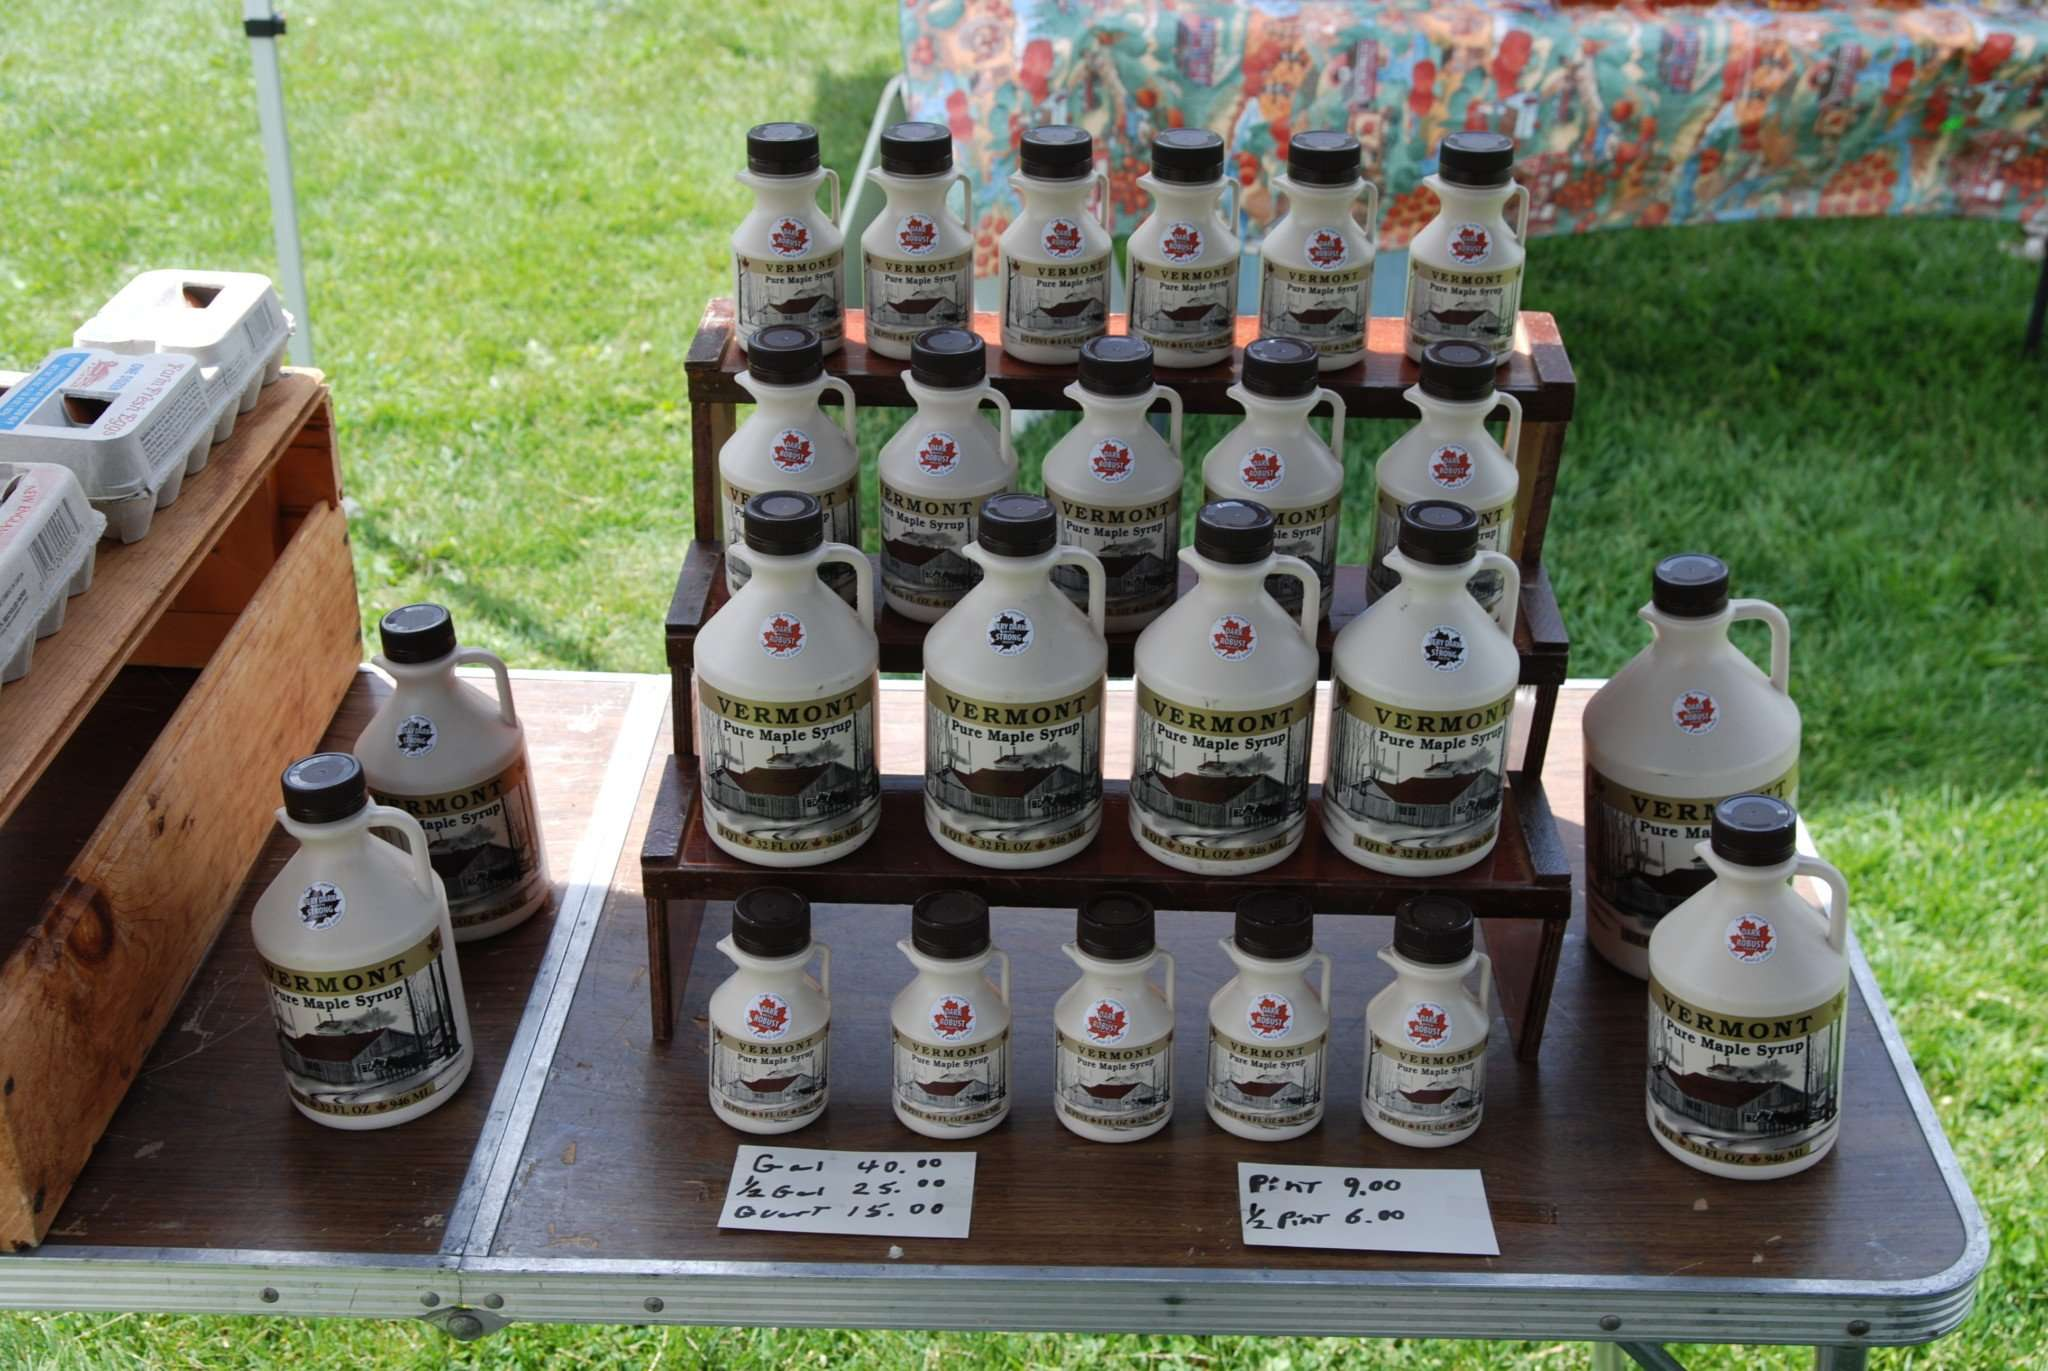 Craftsbury Farmers Market Vendor Products - Vermont Maple Syrup